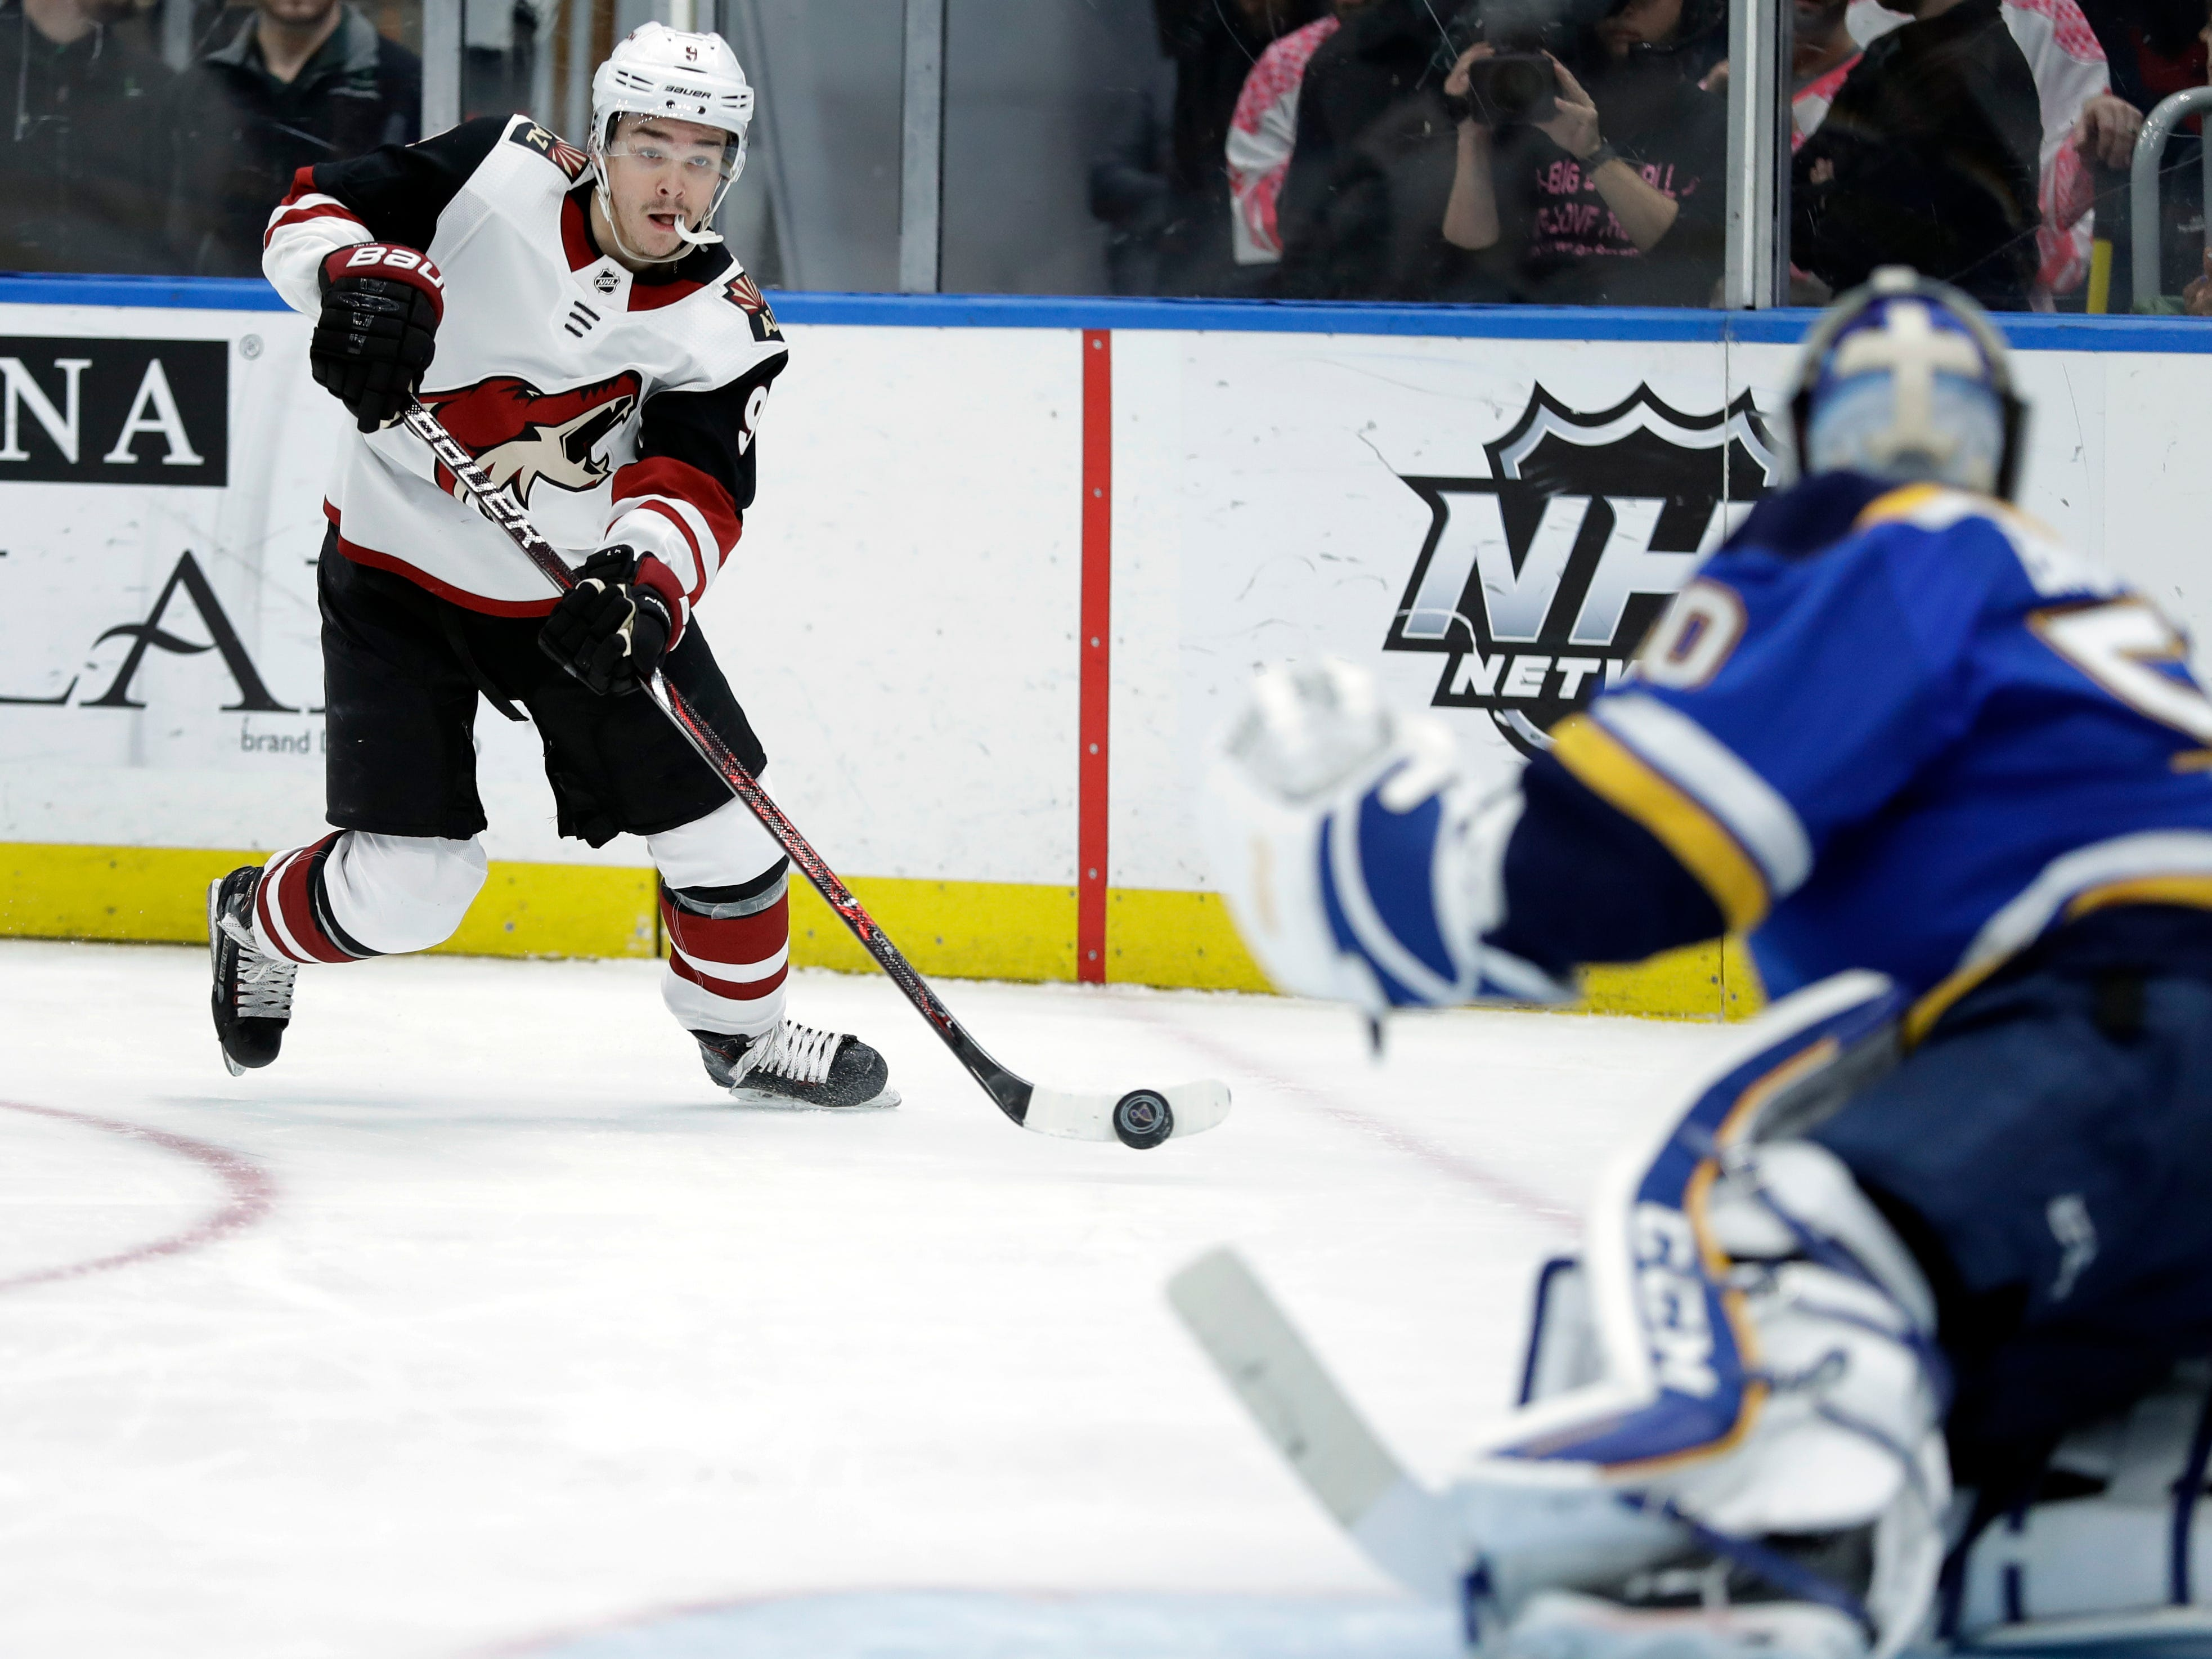 Arizona Coyotes' Clayton Keller, right, handles the puck as St. Louis Blues goaltender Jordan Binnington defends during the first period of an NHL hockey game, Tuesday, March 12, 2019, in St. Louis.